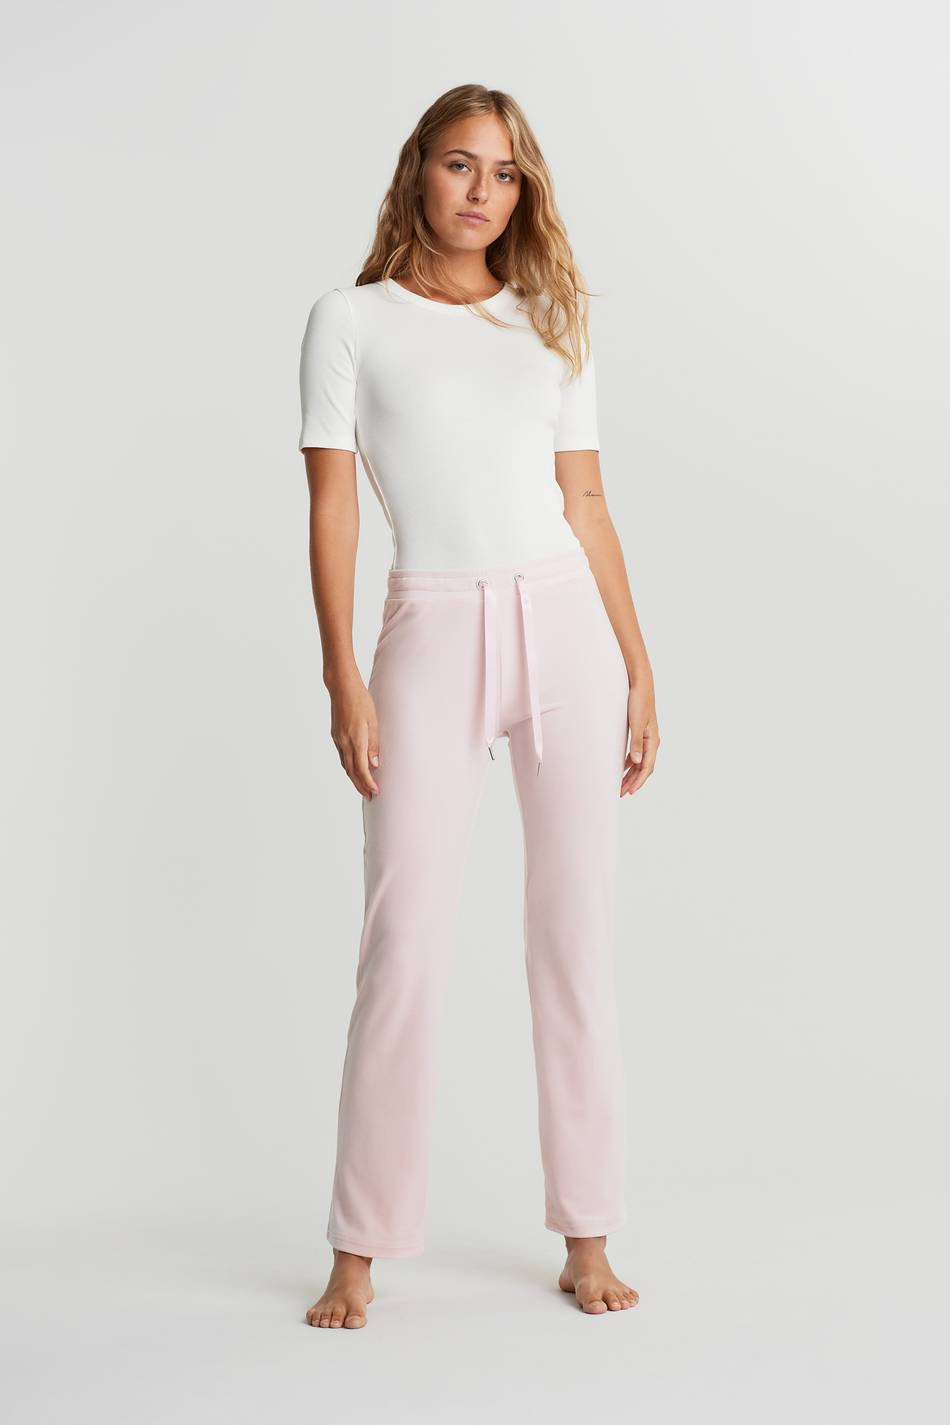 Gina Tricot Cecilia velour trousers XS Female Light pink